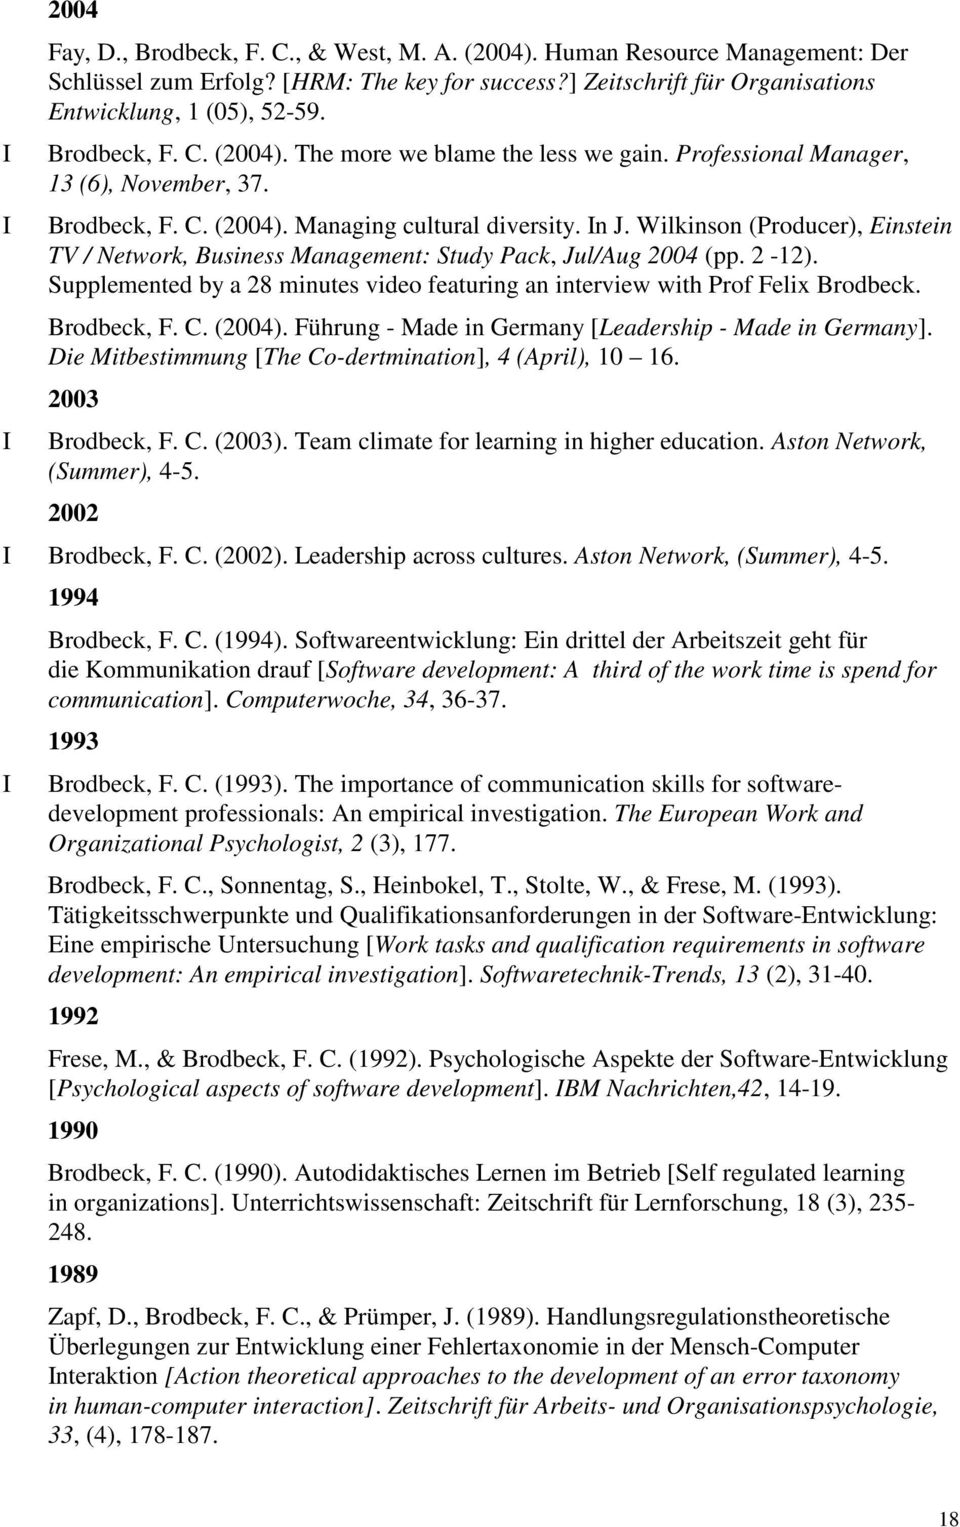 Wilkinson (Producer), Einstein TV / Network, Business Management: Study Pack, Jul/Aug 2004 (pp. 2-12). Supplemented by a 28 minutes video featuring an interview with Prof Felix Brodbeck. Brodbeck, F.